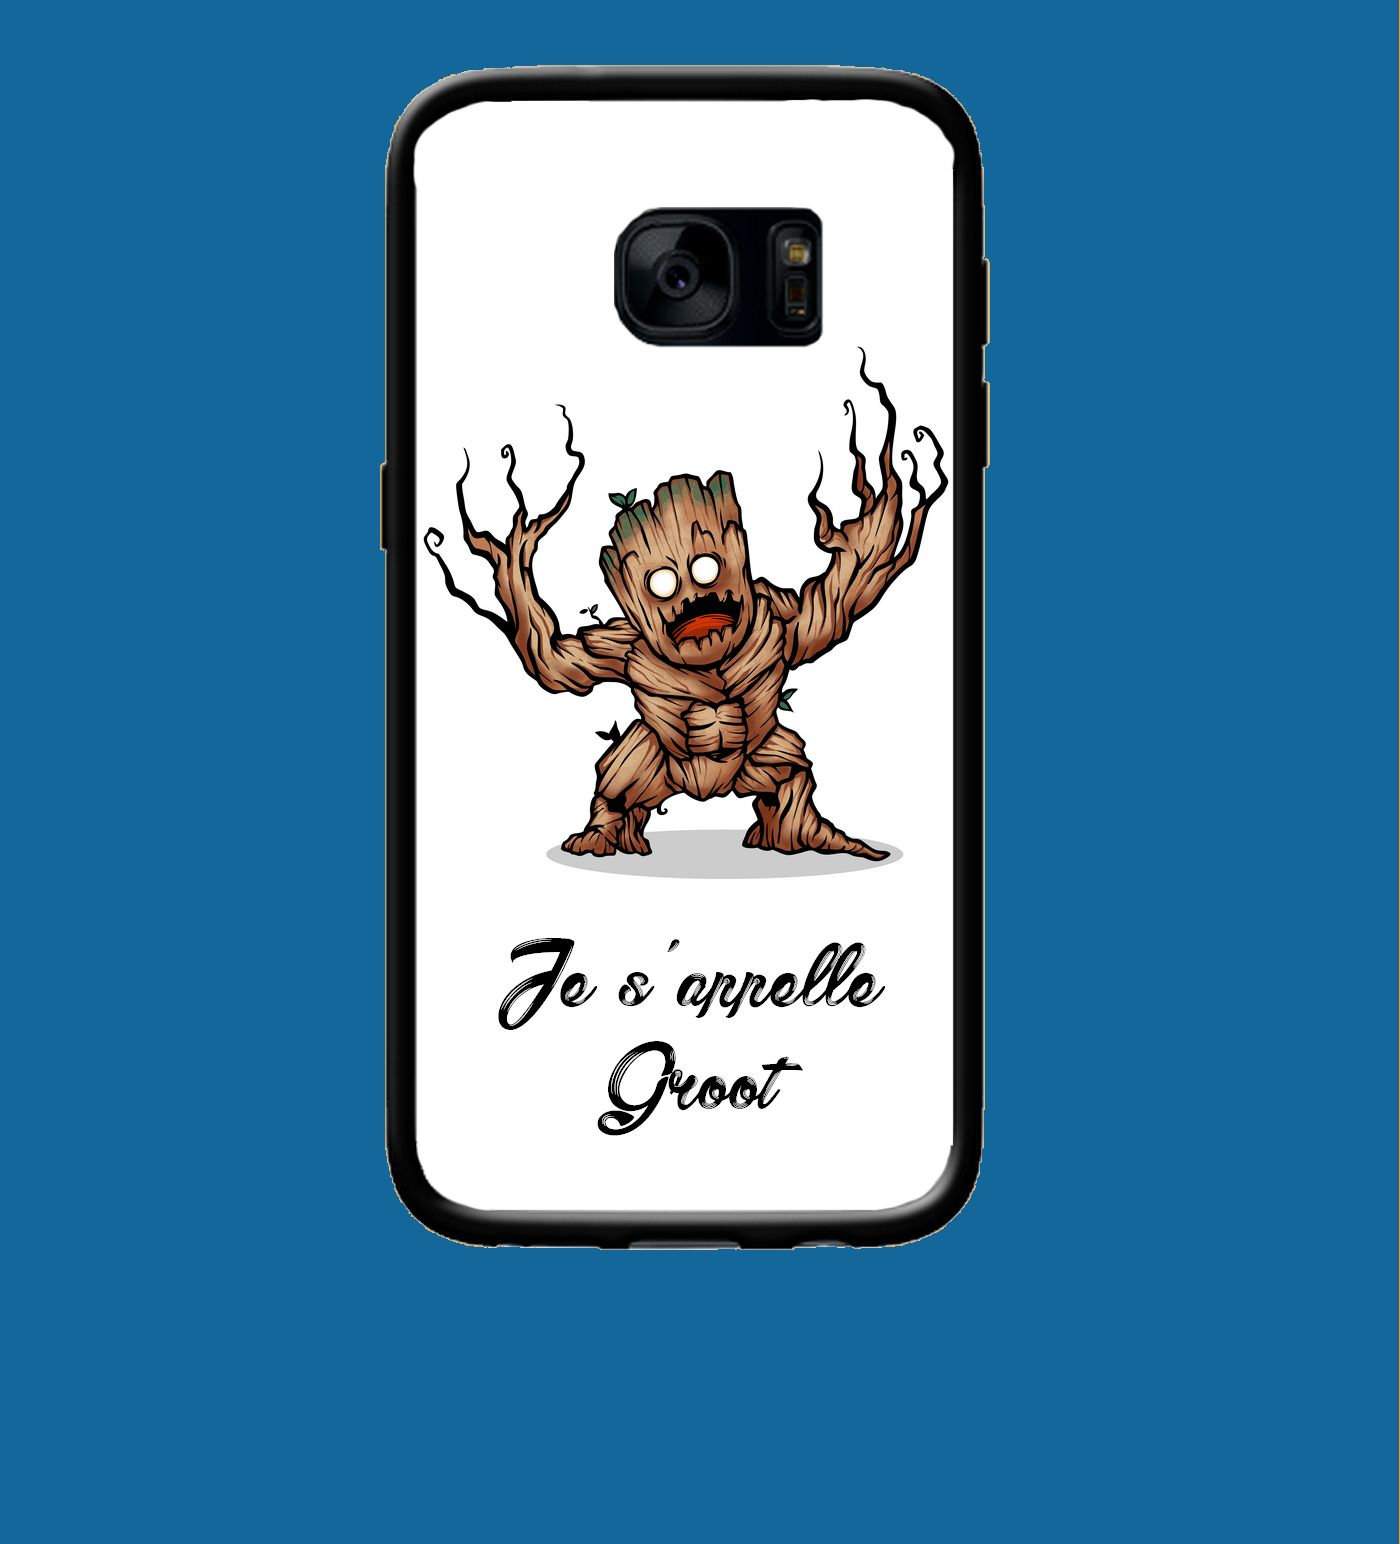 Coque mobile samsung groot 172